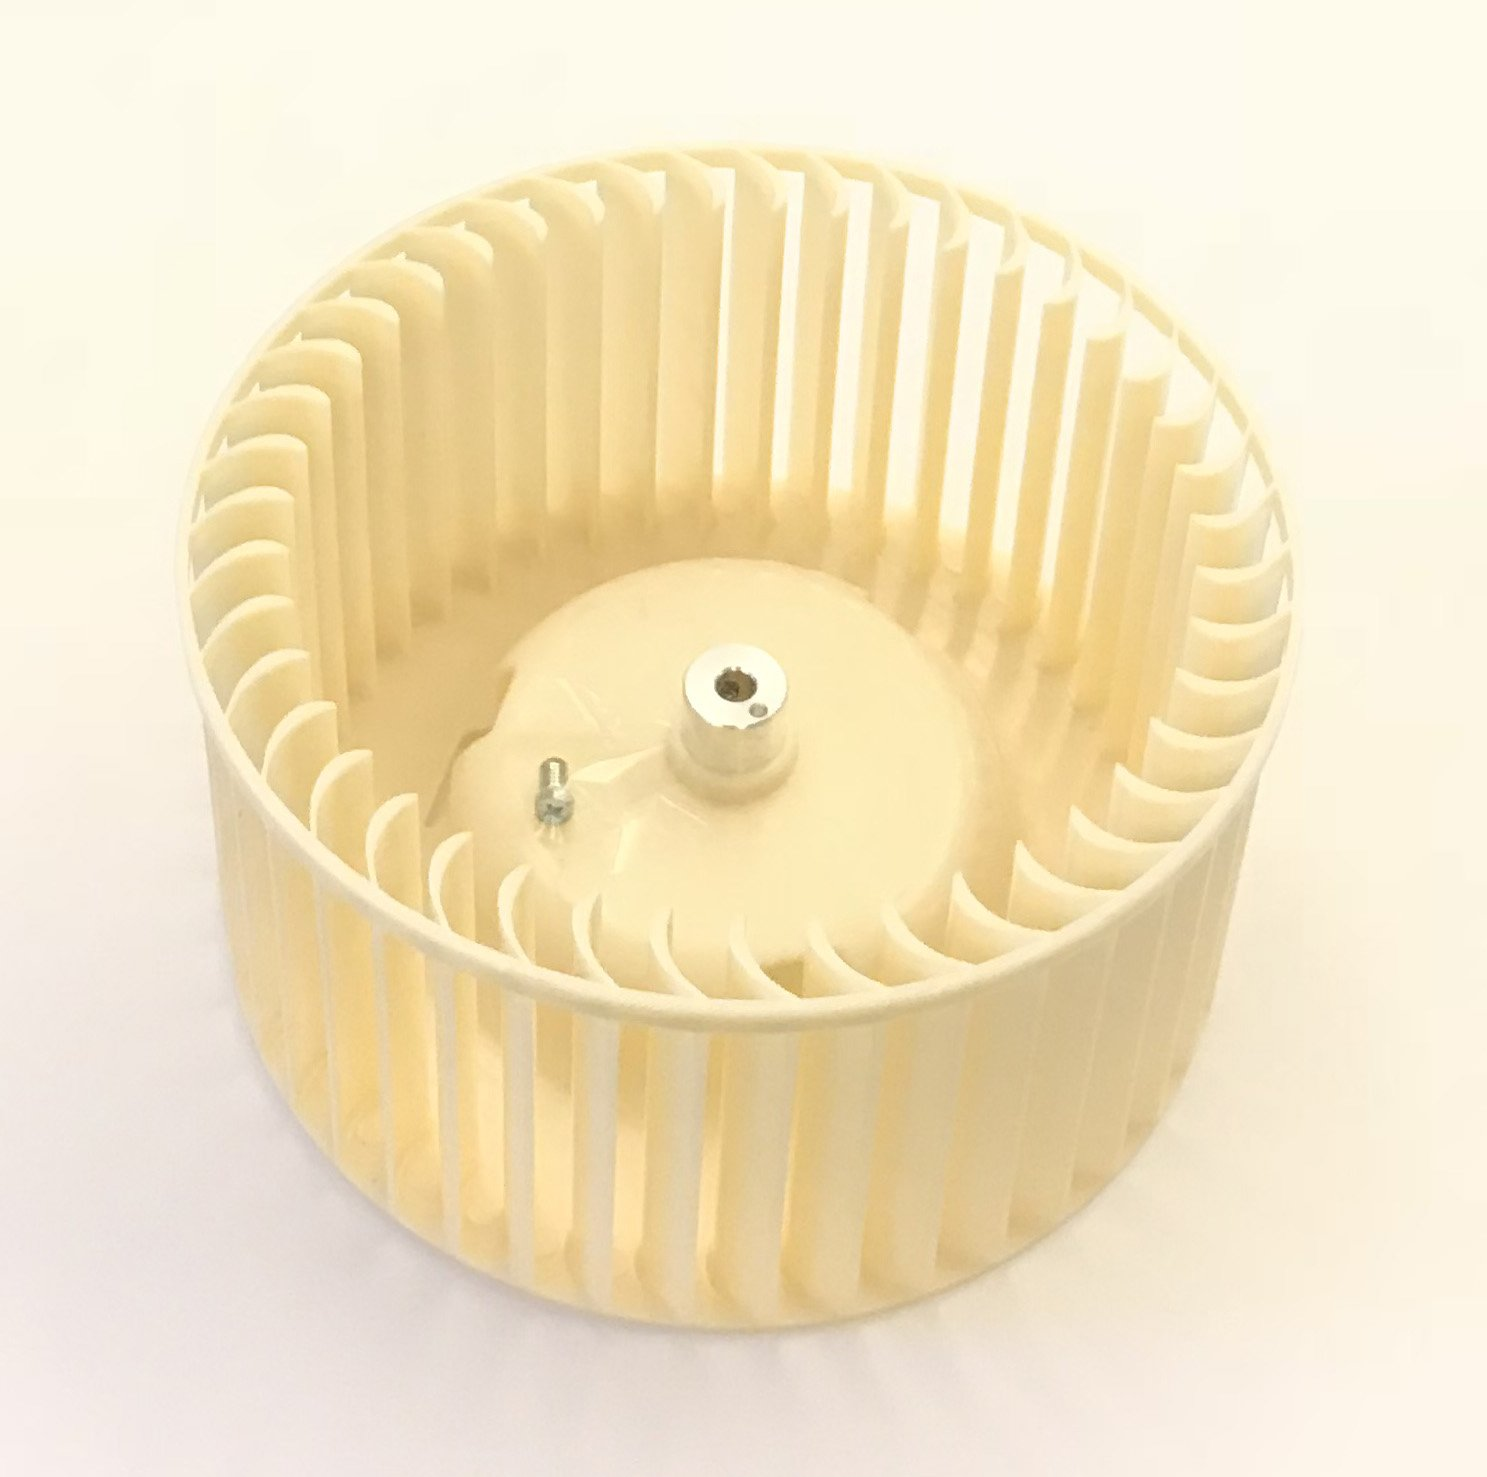 OEM Delonghi Air Conditioner Blower Fan Wheel Specifically For Delonghi PACAN120HPE, PACAN130HPEL, PACN120E, PACAN140HPECA